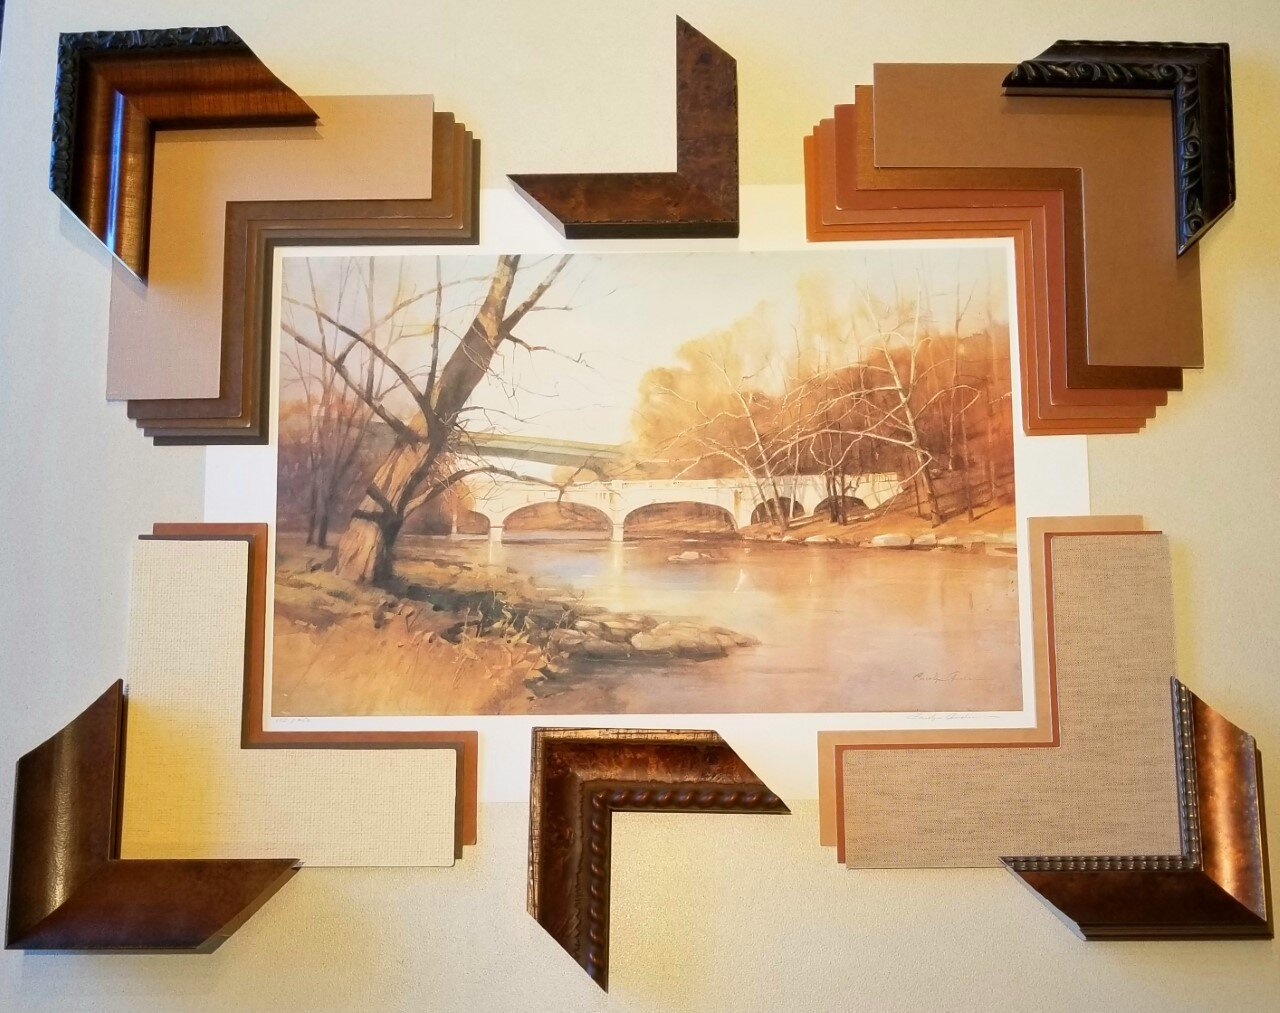 Special Offer: Free Regular Glass with all Custom Framing - Custom Frame Children's Art, Family Photos, Diplomas, Sports Memorabilia, & Family Heirlooms as Gifts for the Upcoming Holidays by 11/9/19 & SAVE.Present this offer with your Order and receive FREE REGULAR GLASS with any Custom Frame purchase. Discount limit is $50. Feel free to choose upgrades in glass and your order will still be discounted by the cost of regular glass. Can't be combined with other offers.